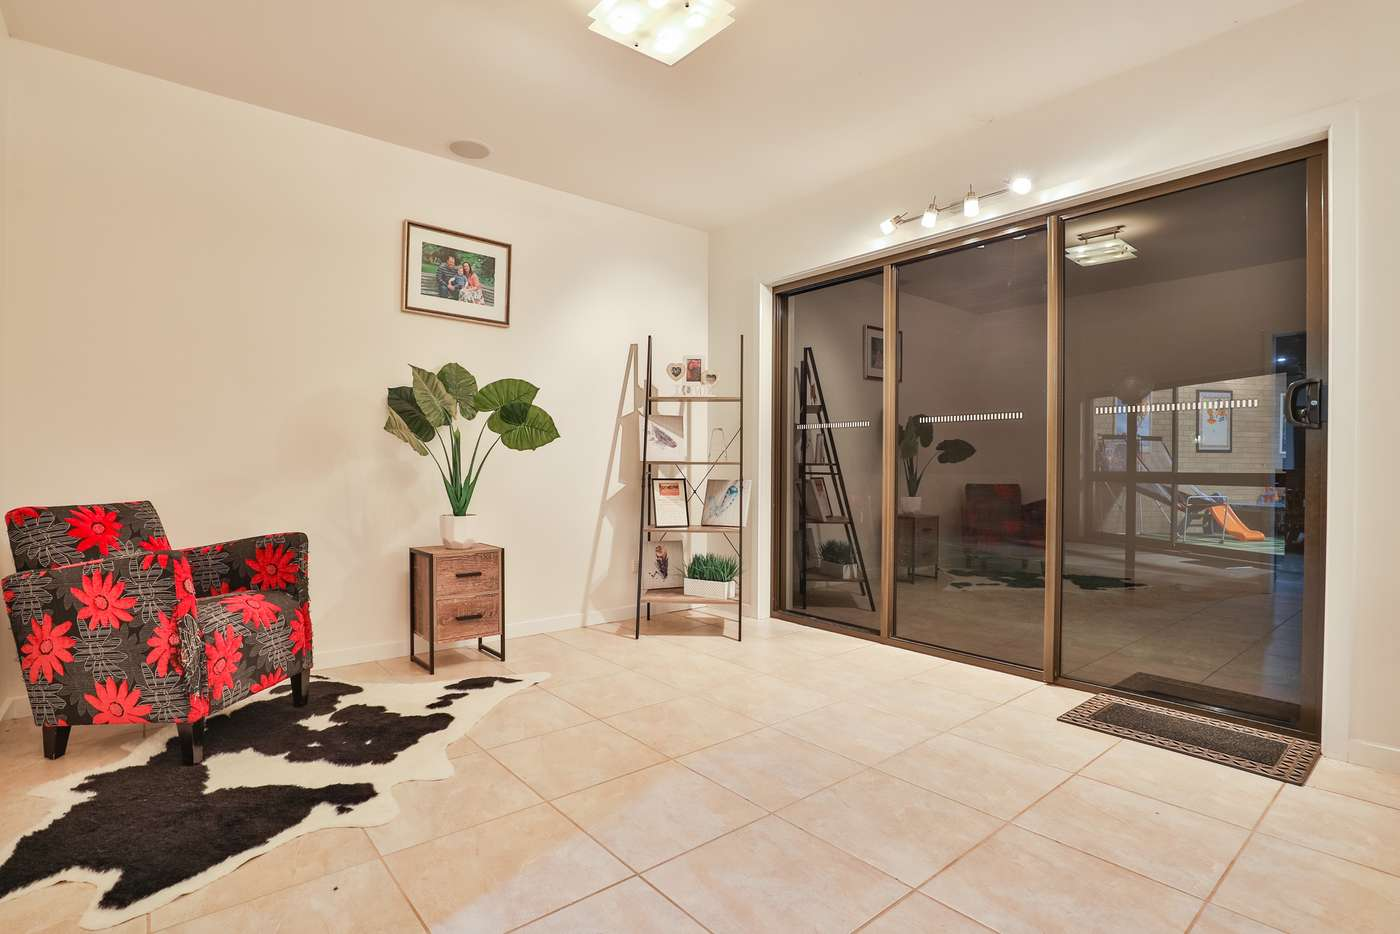 Sixth view of Homely house listing, 128 Cowra Avenue Extension, Irymple VIC 3498